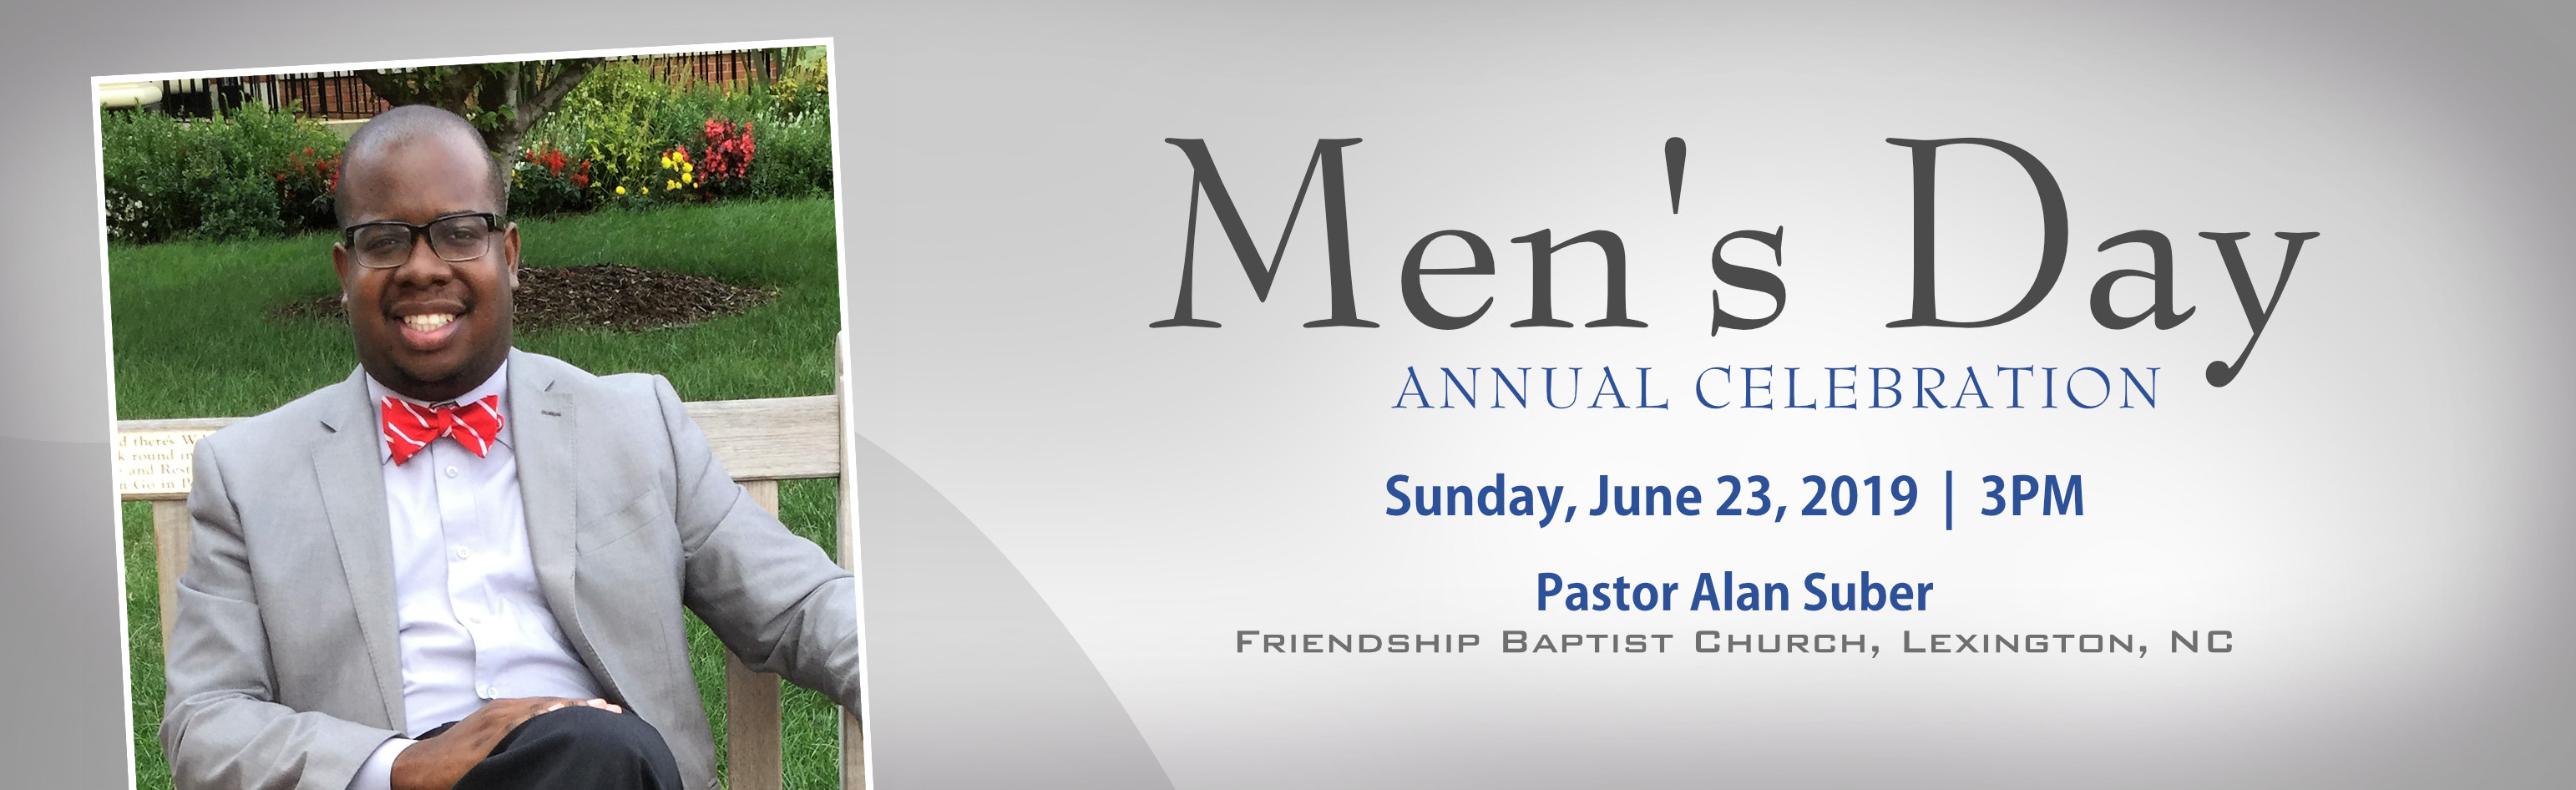 Mens Day, Sunday, June 23, 2019, 3PM, Pastor Alan Suber